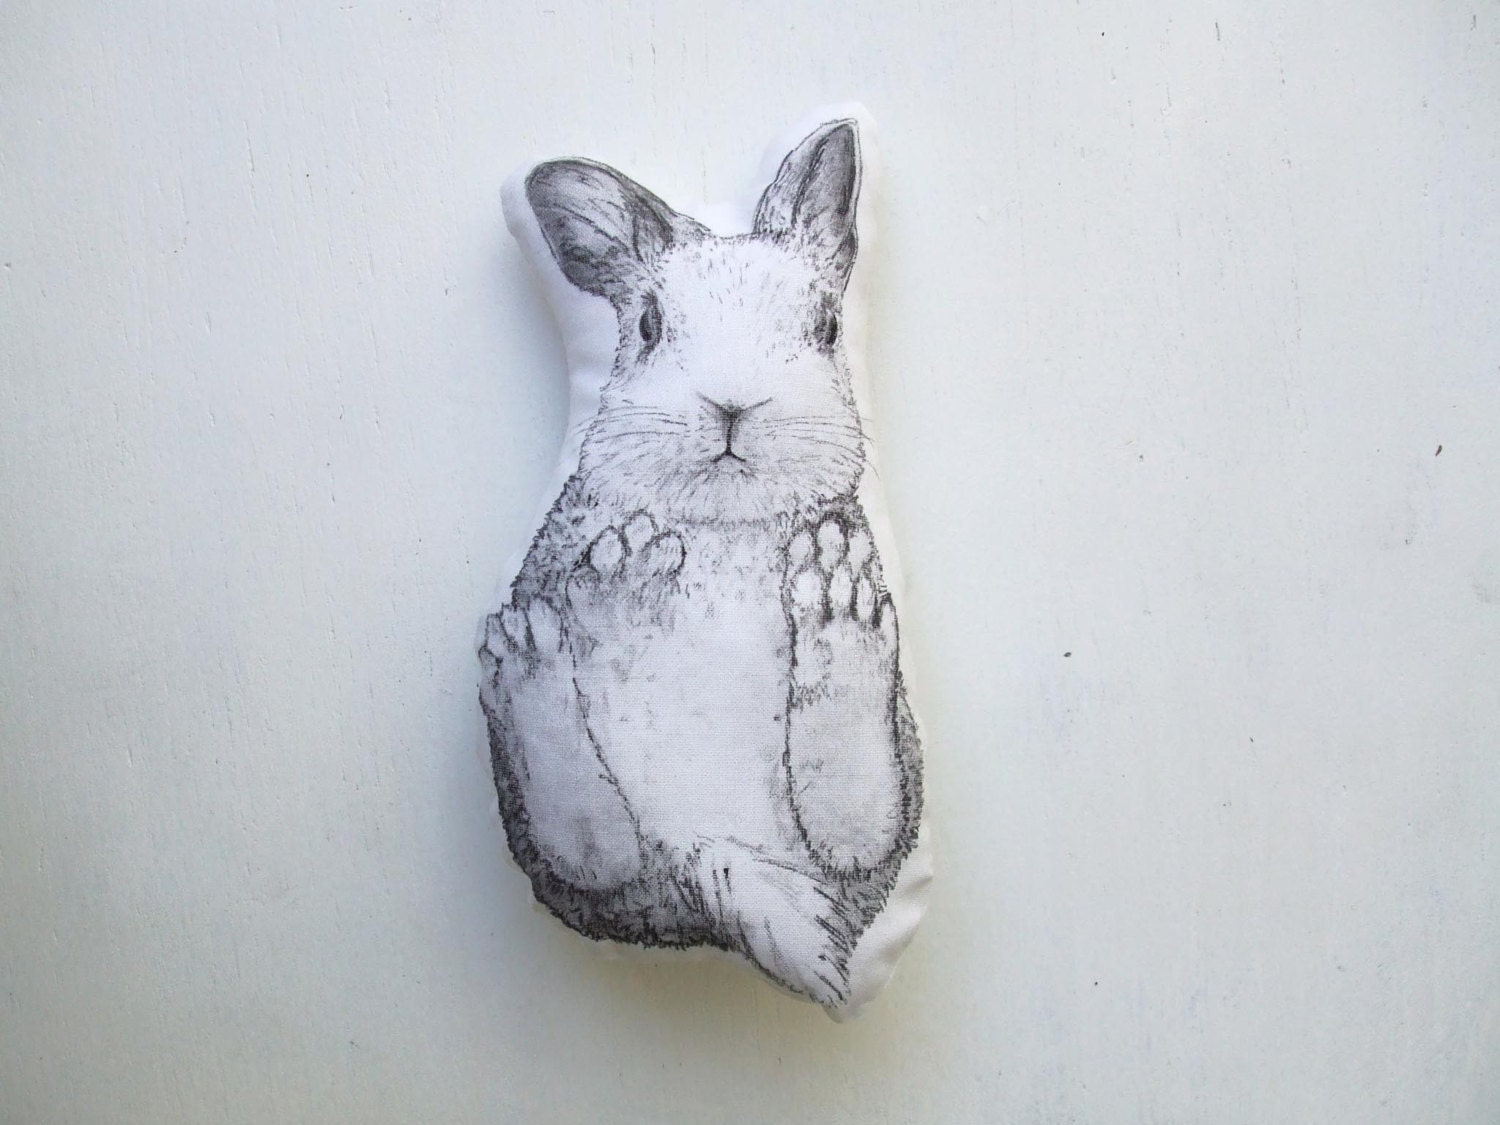 Http Etsyfind Wordpress Com 2014 03 07 White Bunny Plush Cute Rabbit Soft Toy Forest Home Decor Black And White Animal Mini Pillow Cute